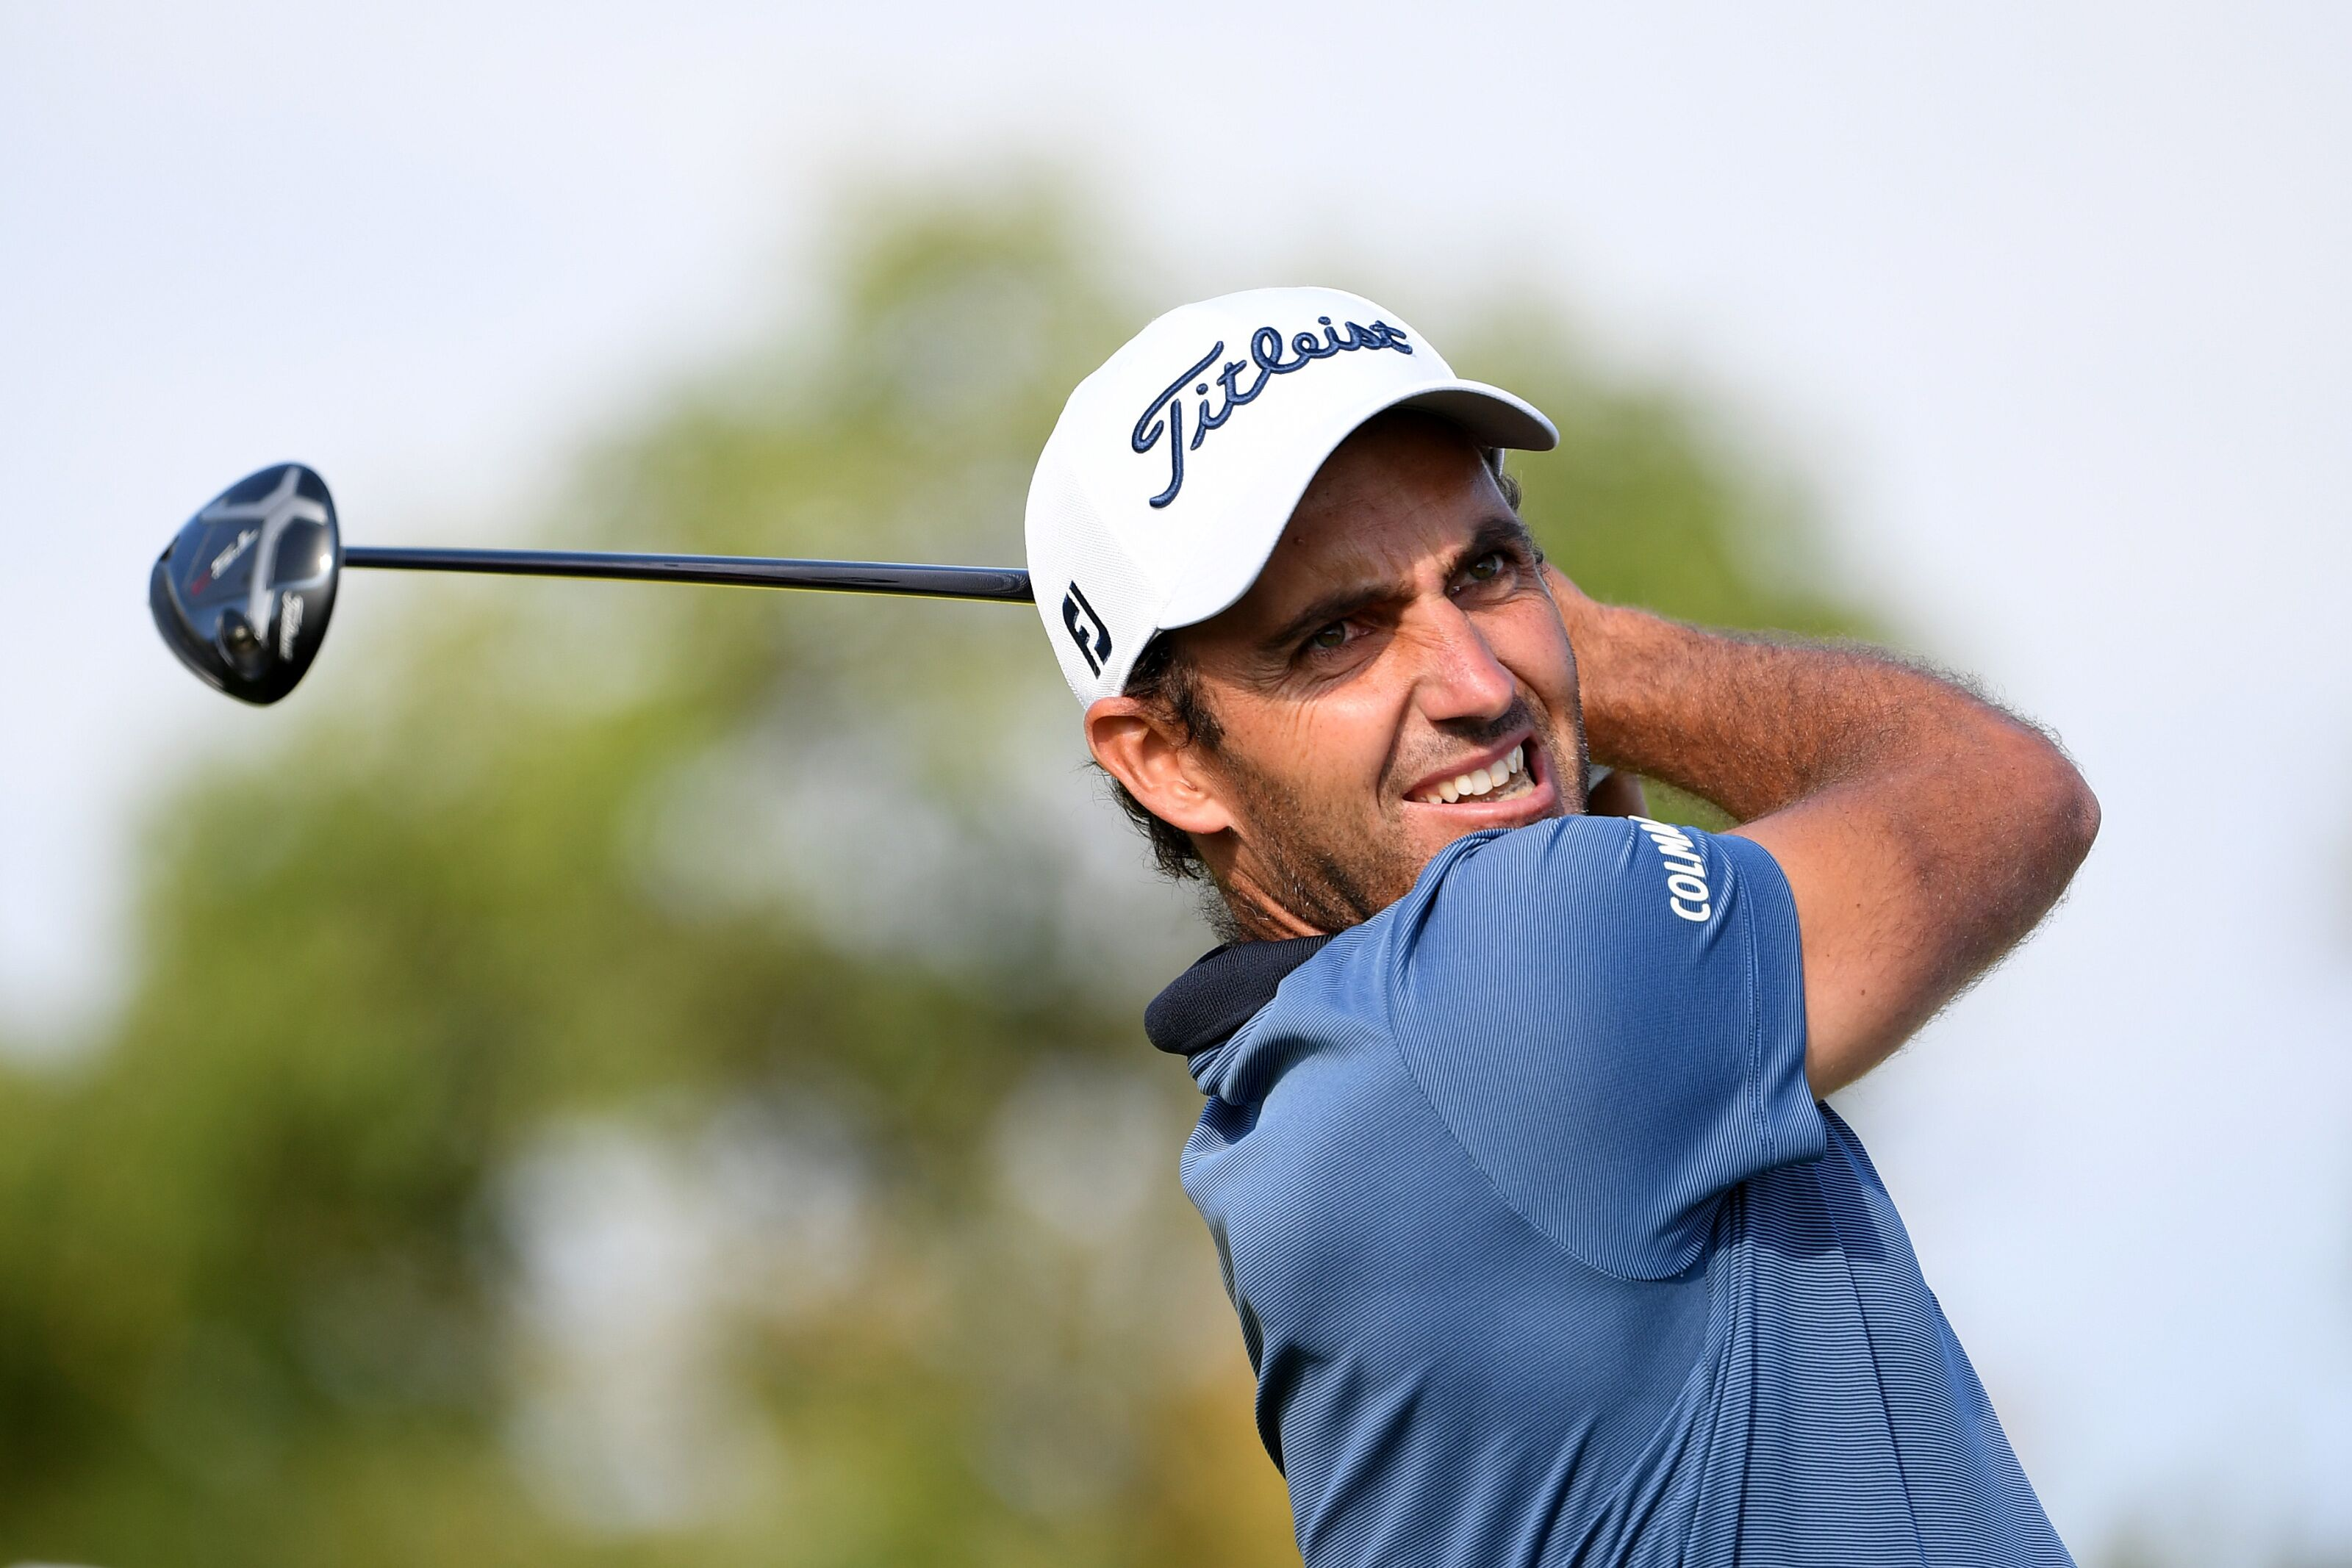 Czech Masters: Edoardo Molinari holds two shot lead at halfway mark